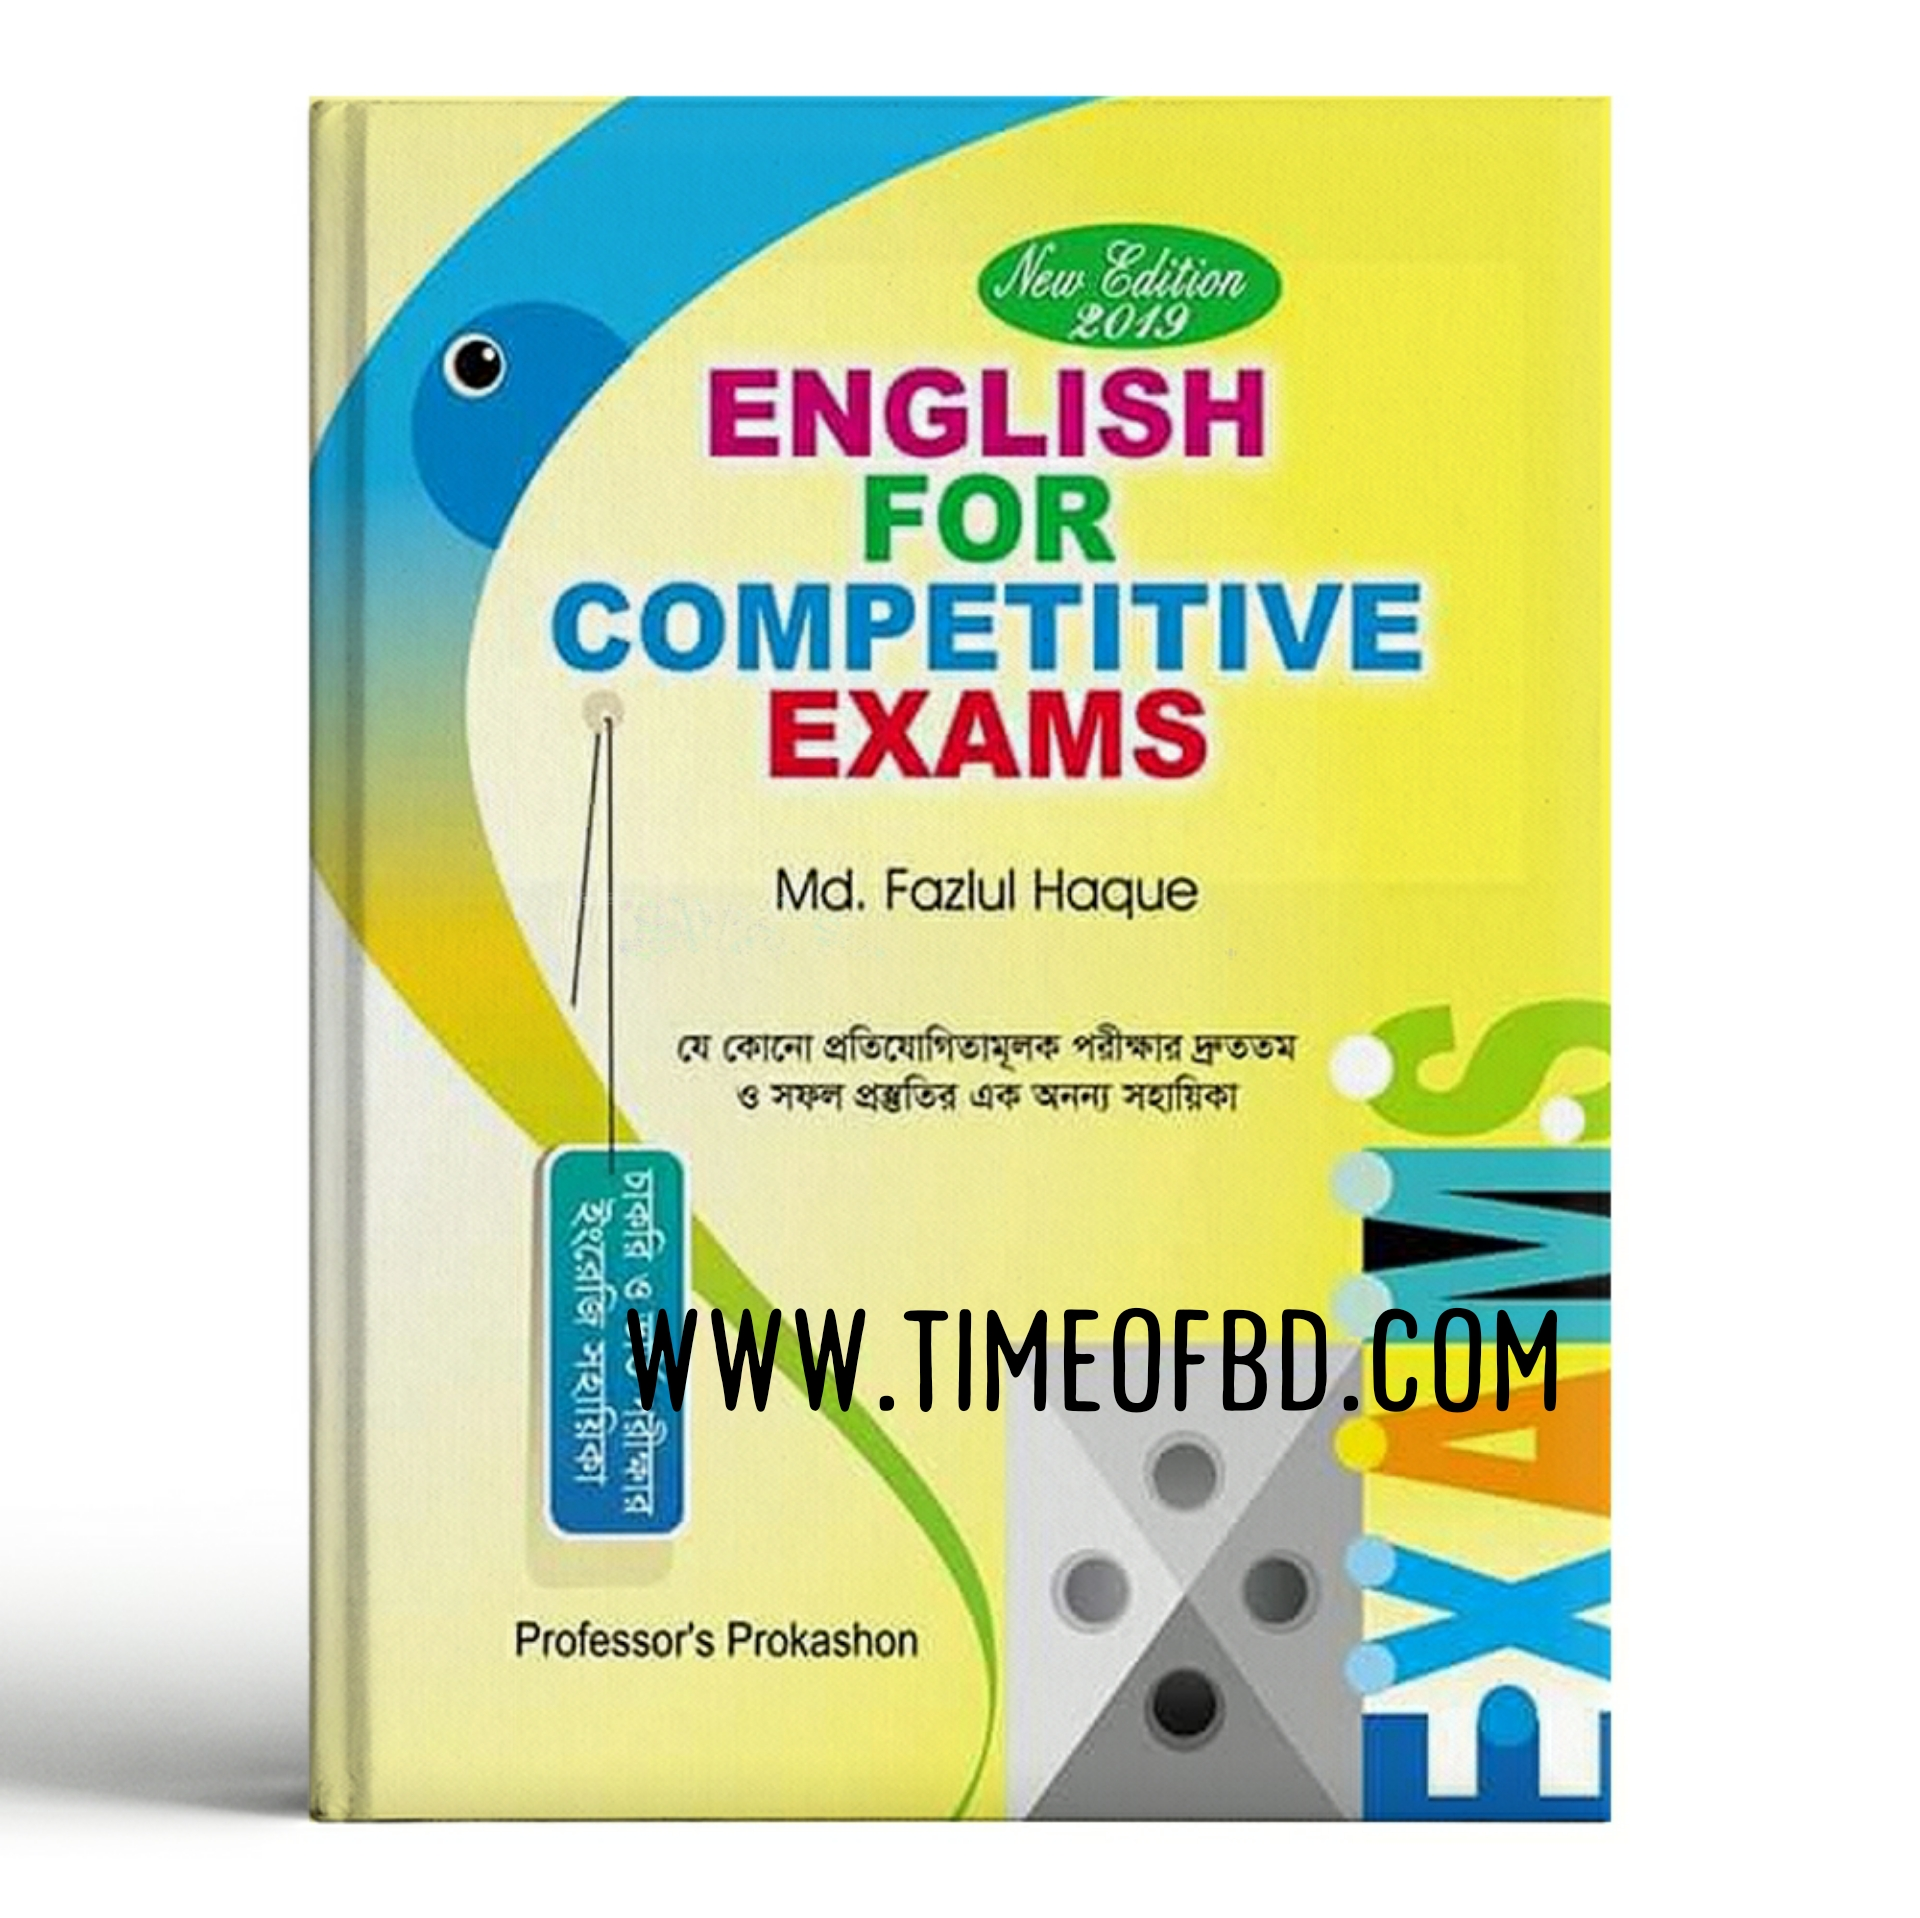 English for Competitive Exam book price,English for Competitive Exam book,English for Competitive Exam online order link